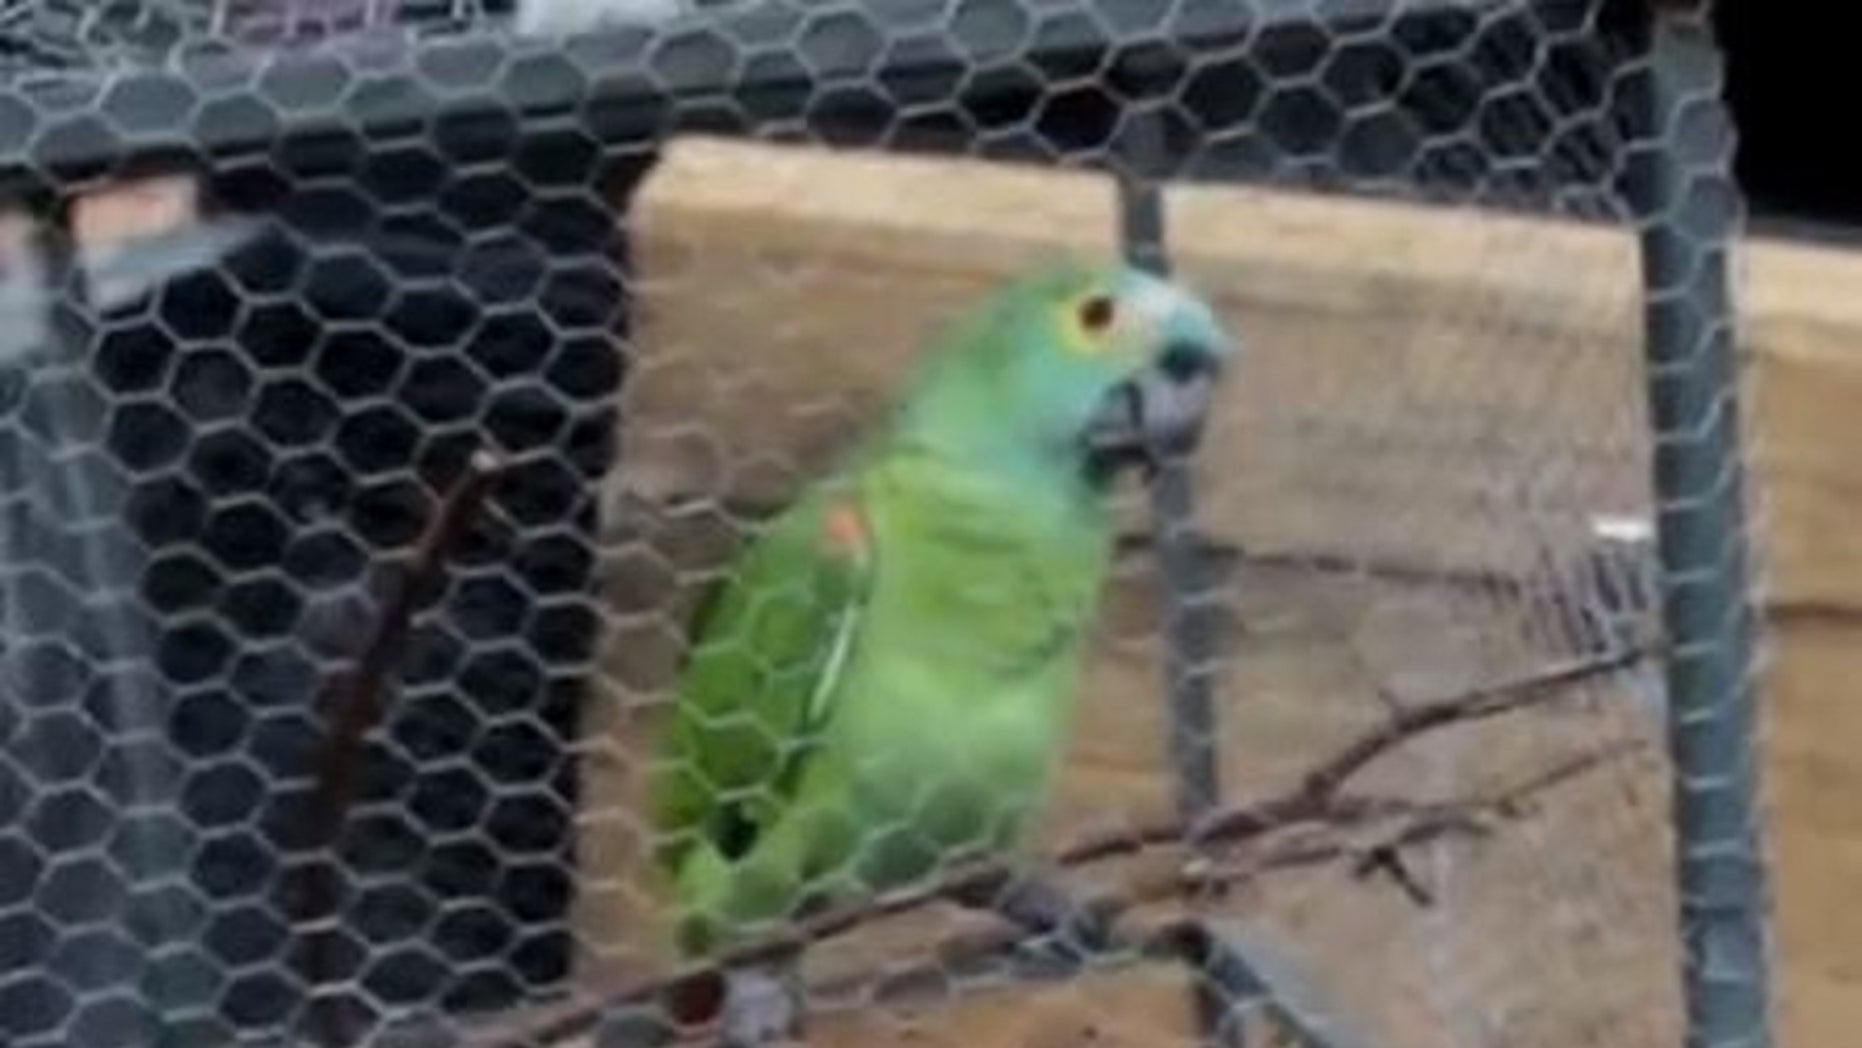 Brazilian police seized a parrot trained to alert drug dealers of police.